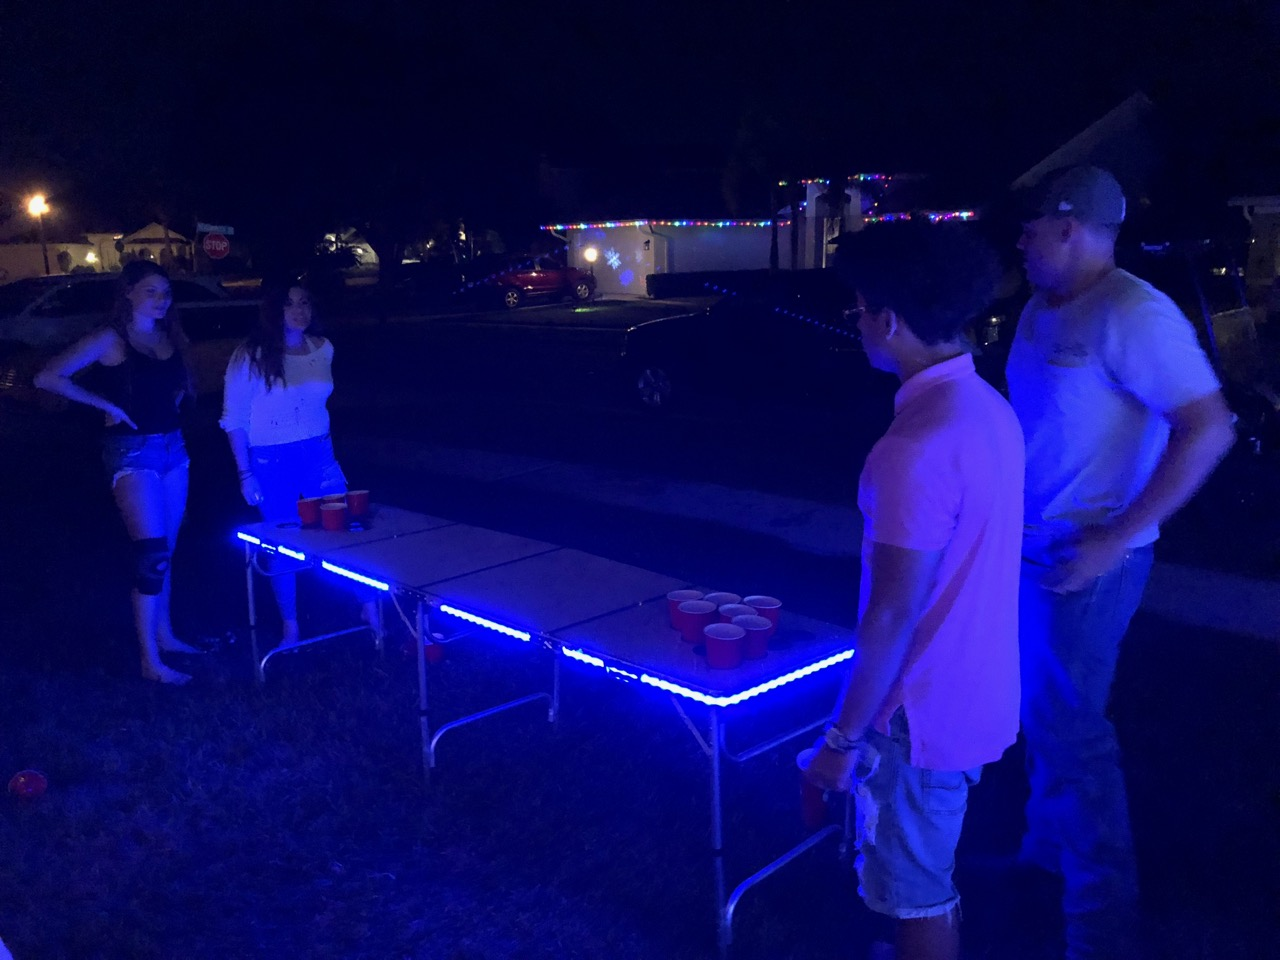 LED Beer Pong Table Rental Florida - Par